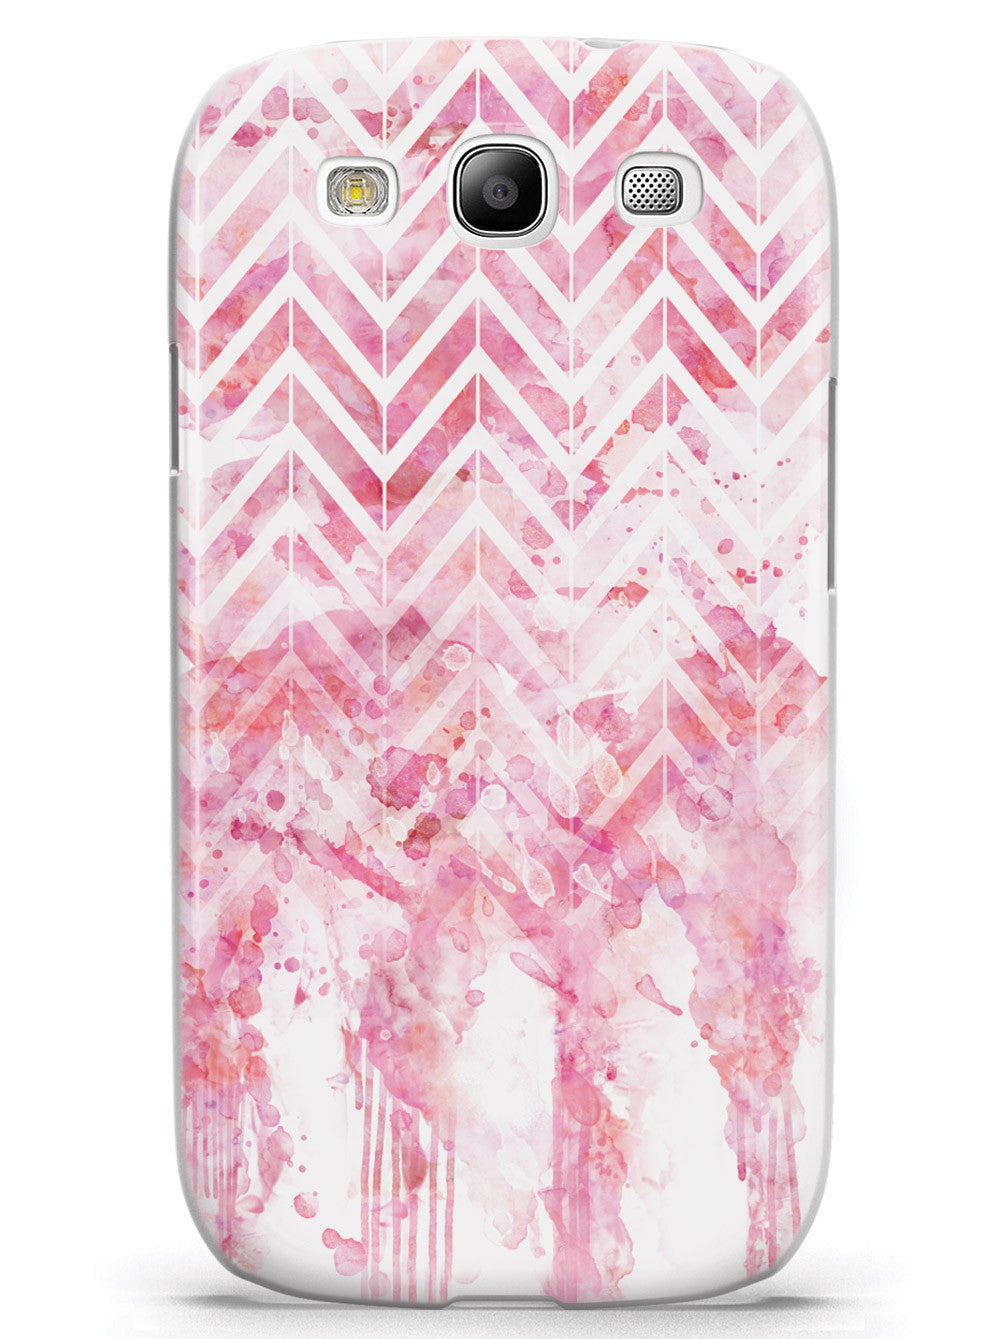 Dripping Watercolor Pink Chevron Pattern Case